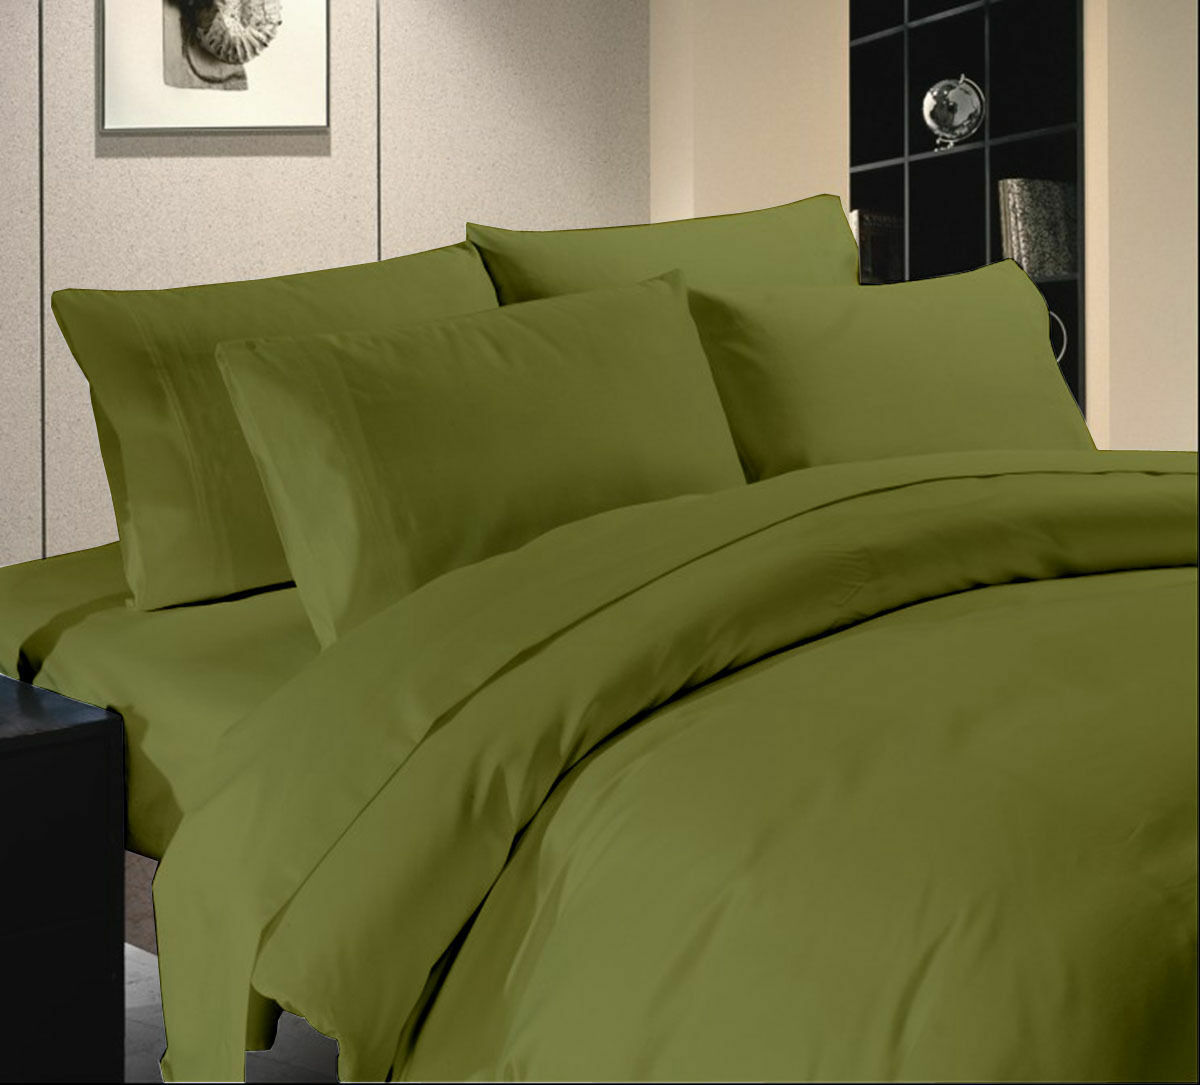 Bed Sheet Set Moss Olive Solid RV Camper & BUNK Bed All Sizes 1000 Thread Count